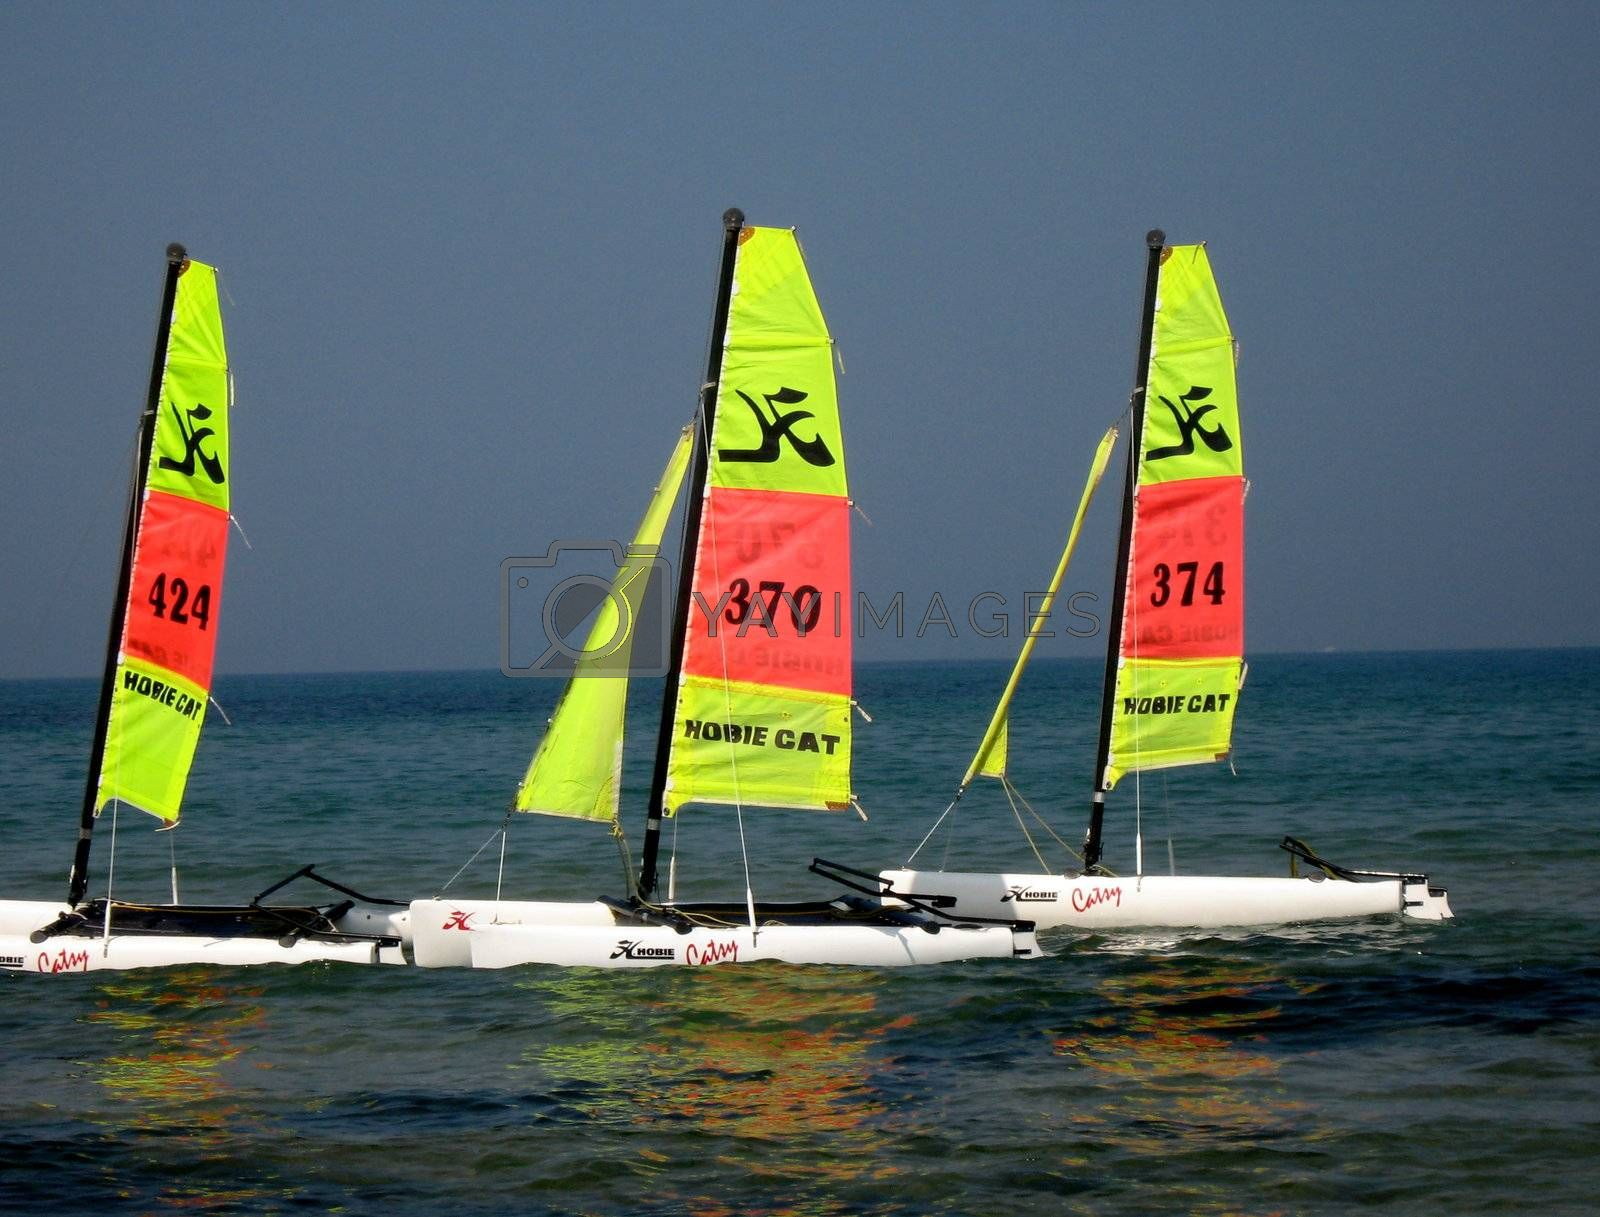 3 hobie cats in line, only lasted 3 seconds till wind changed